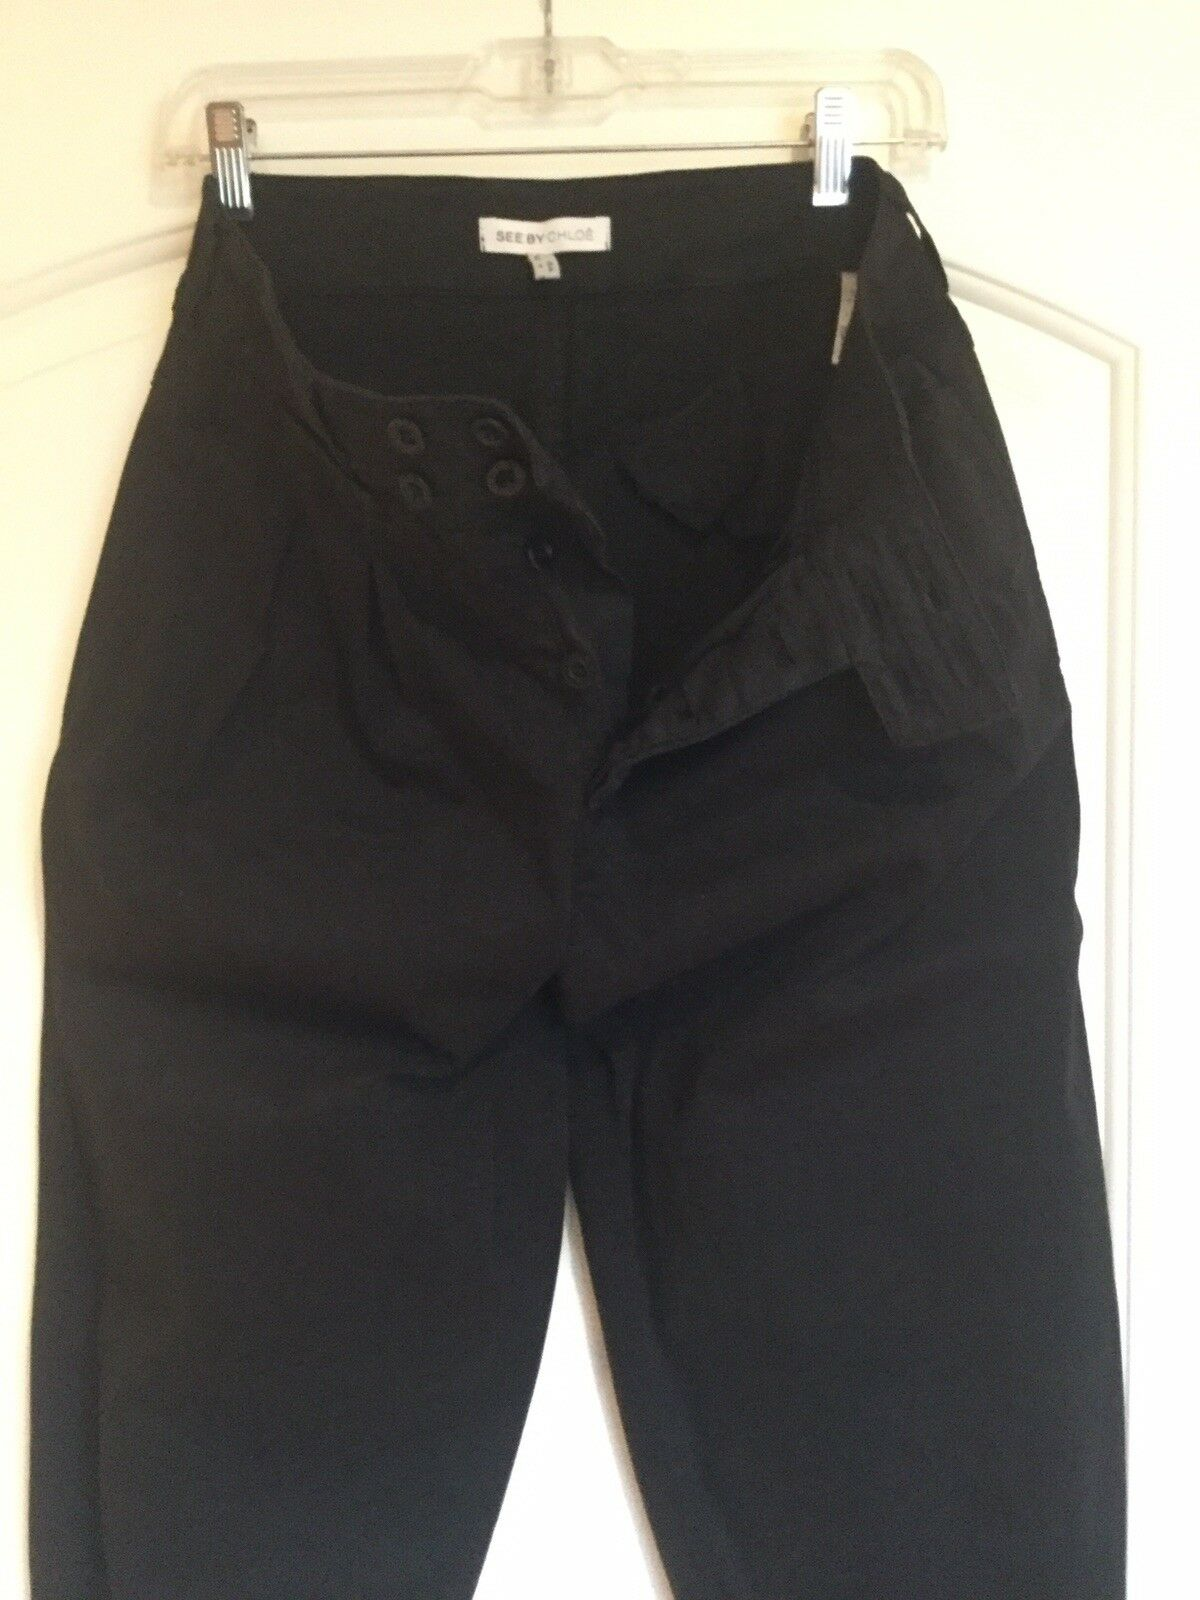 "ONE OF A KIND COTTON TAPERED PANTS  BY  SEE BY CHLOE"" , Size 4"